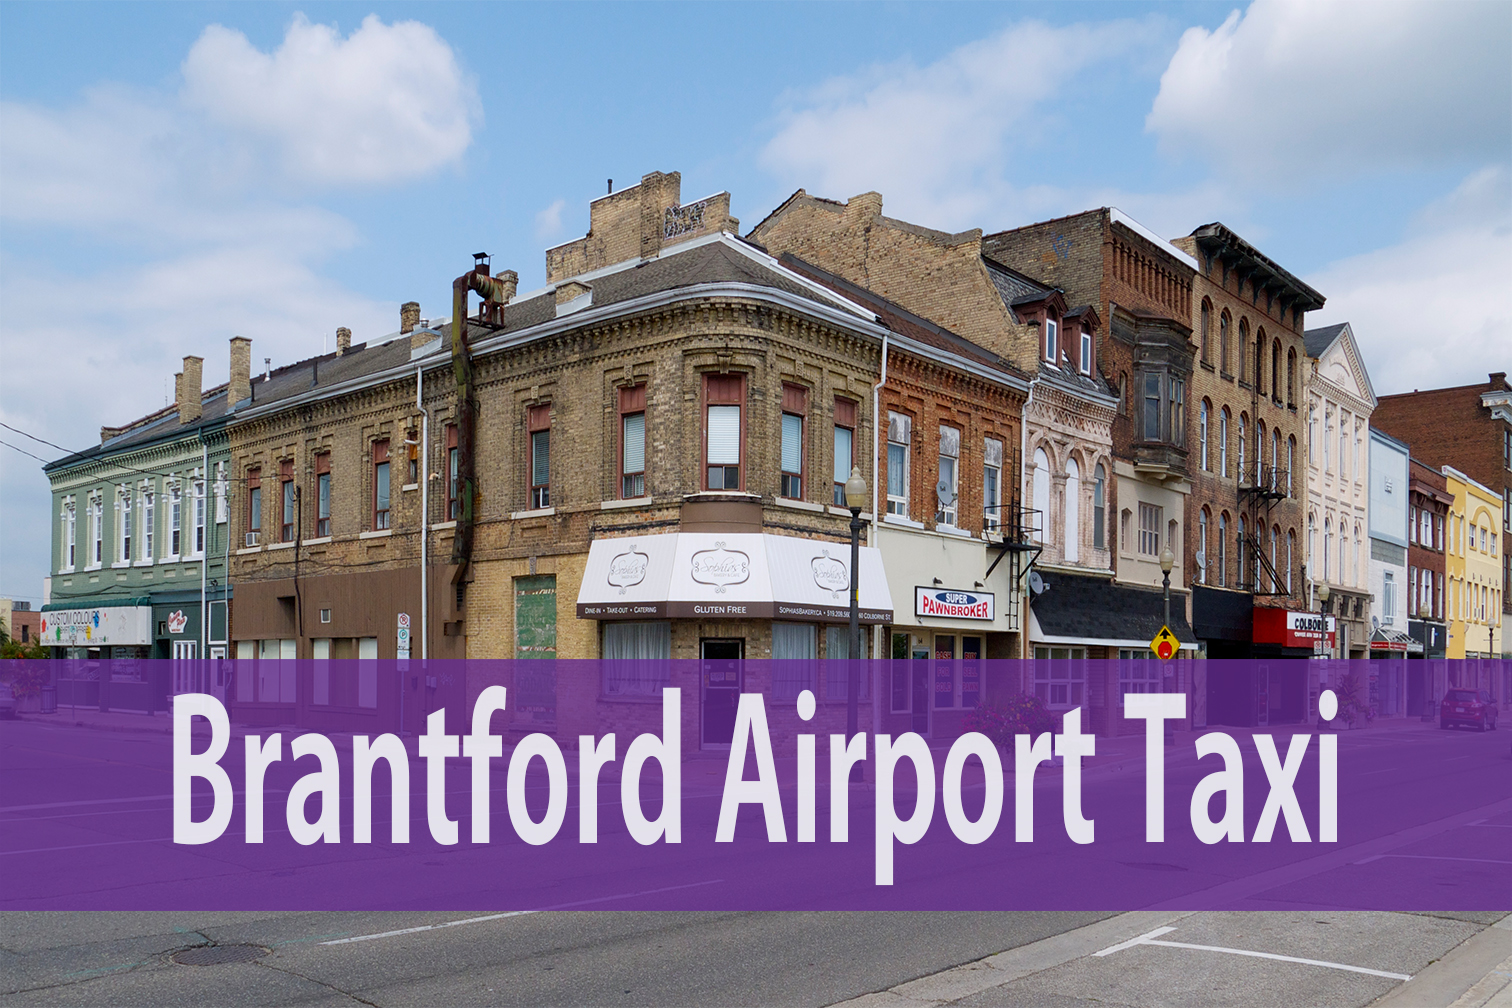 Brantford Airport Taxi